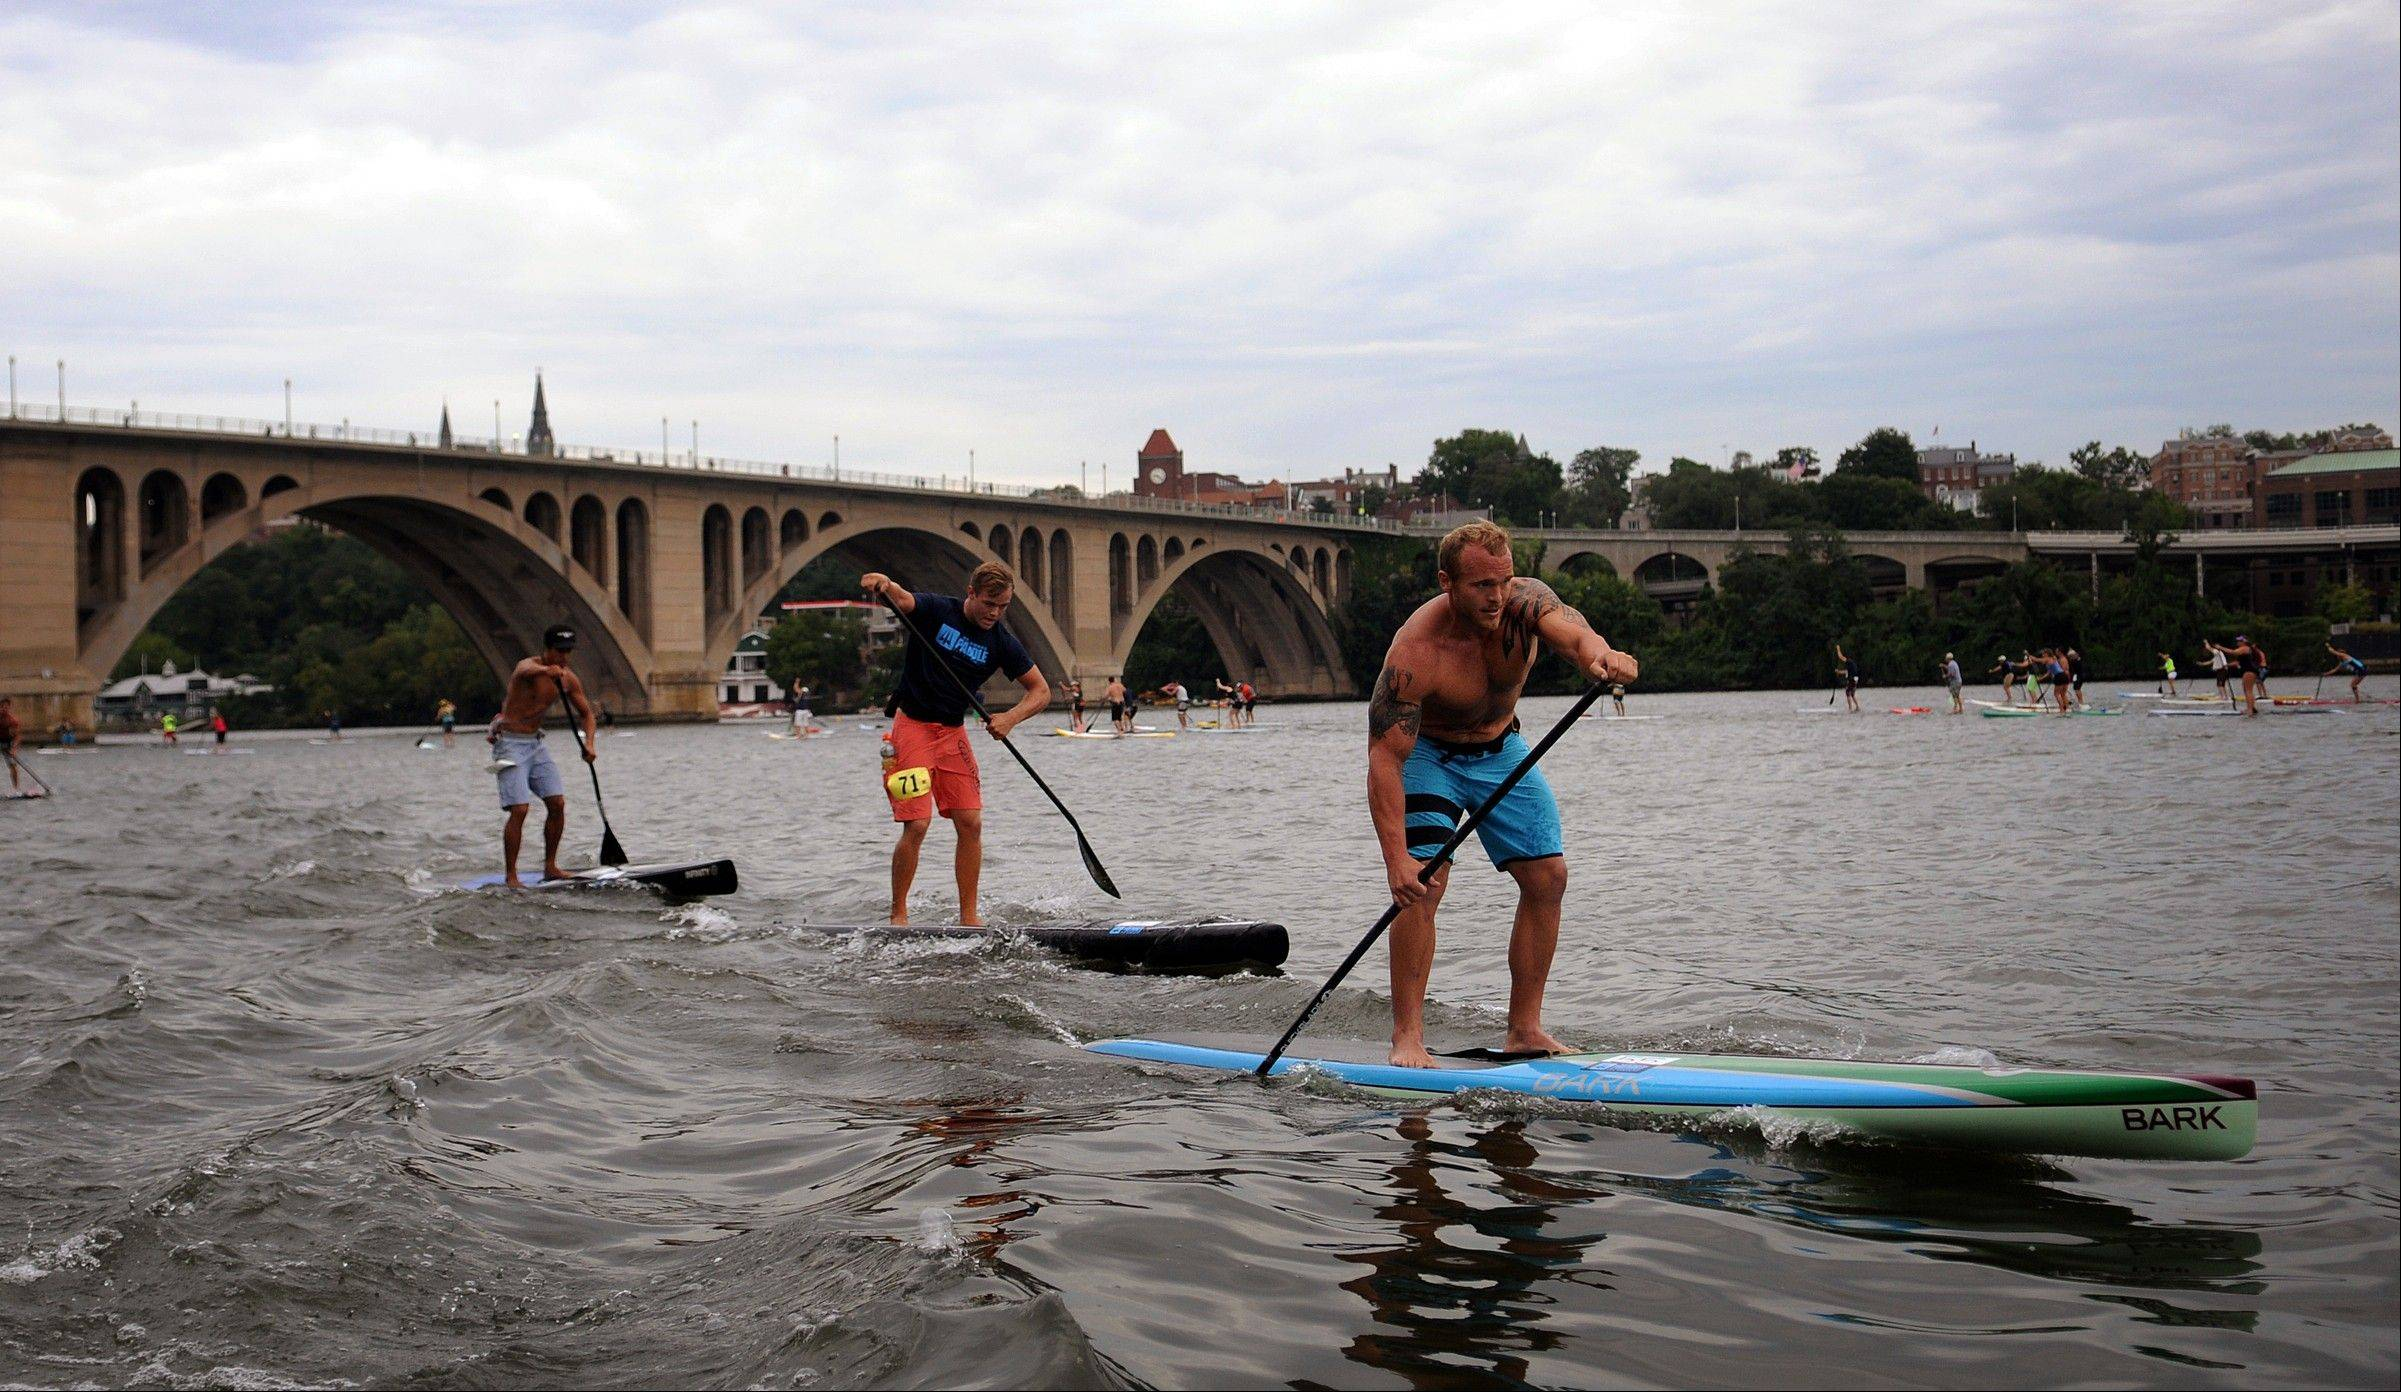 Christopher Johnson of North Carolina takes the lead during the Waterman�s Paddle for Humanity competition on the Potomac River in Washington, D.C.